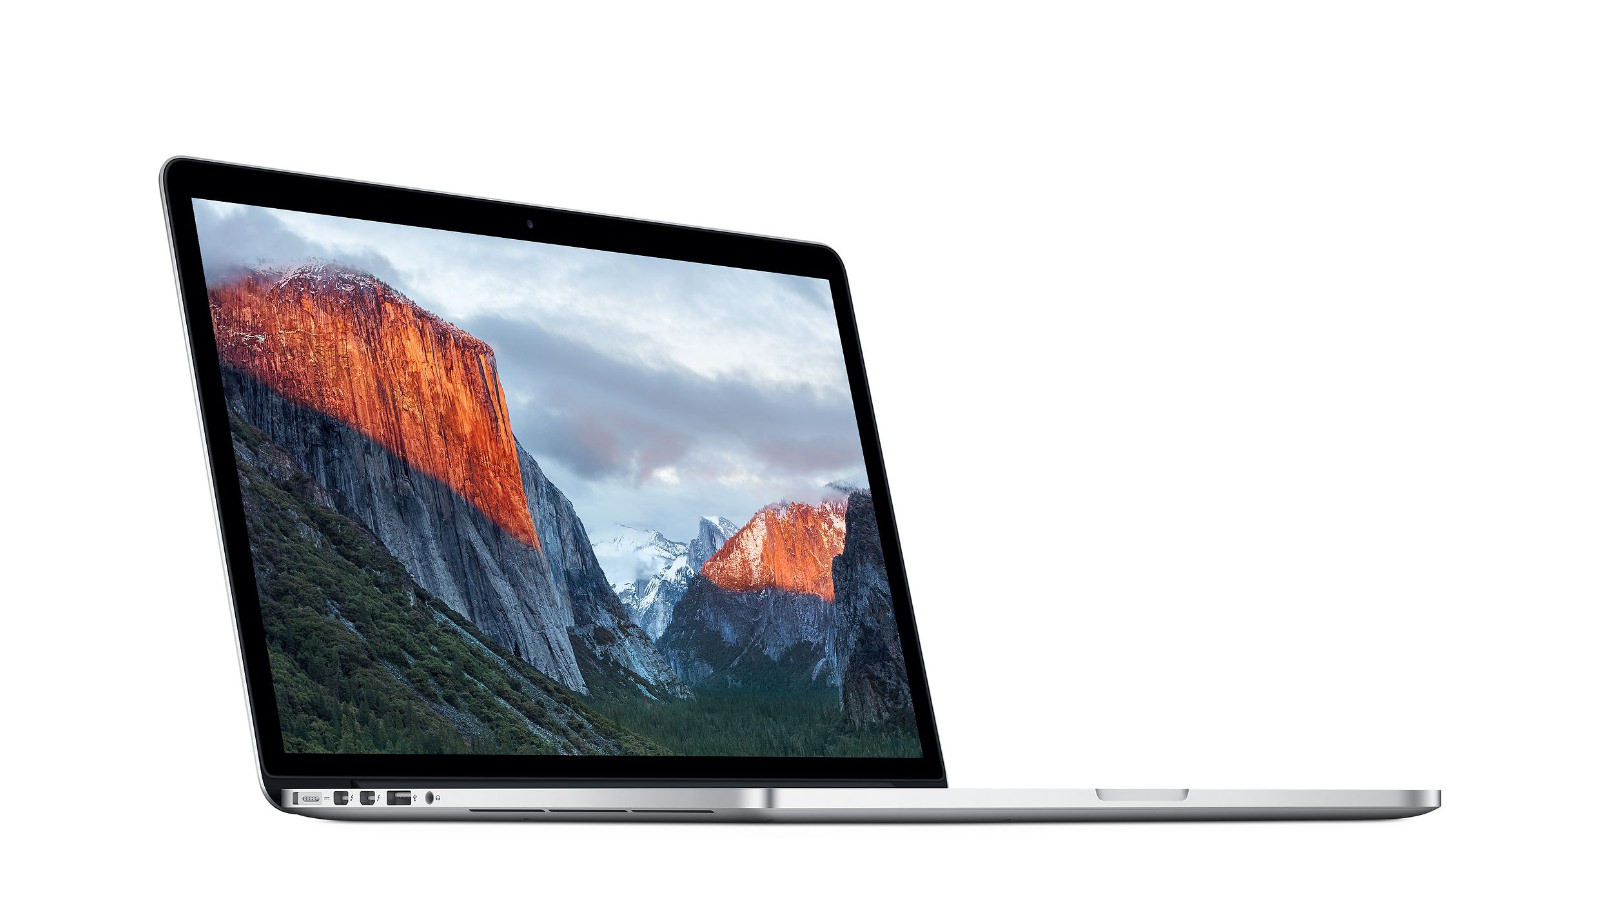 MacBook Pro 2015 15inch model